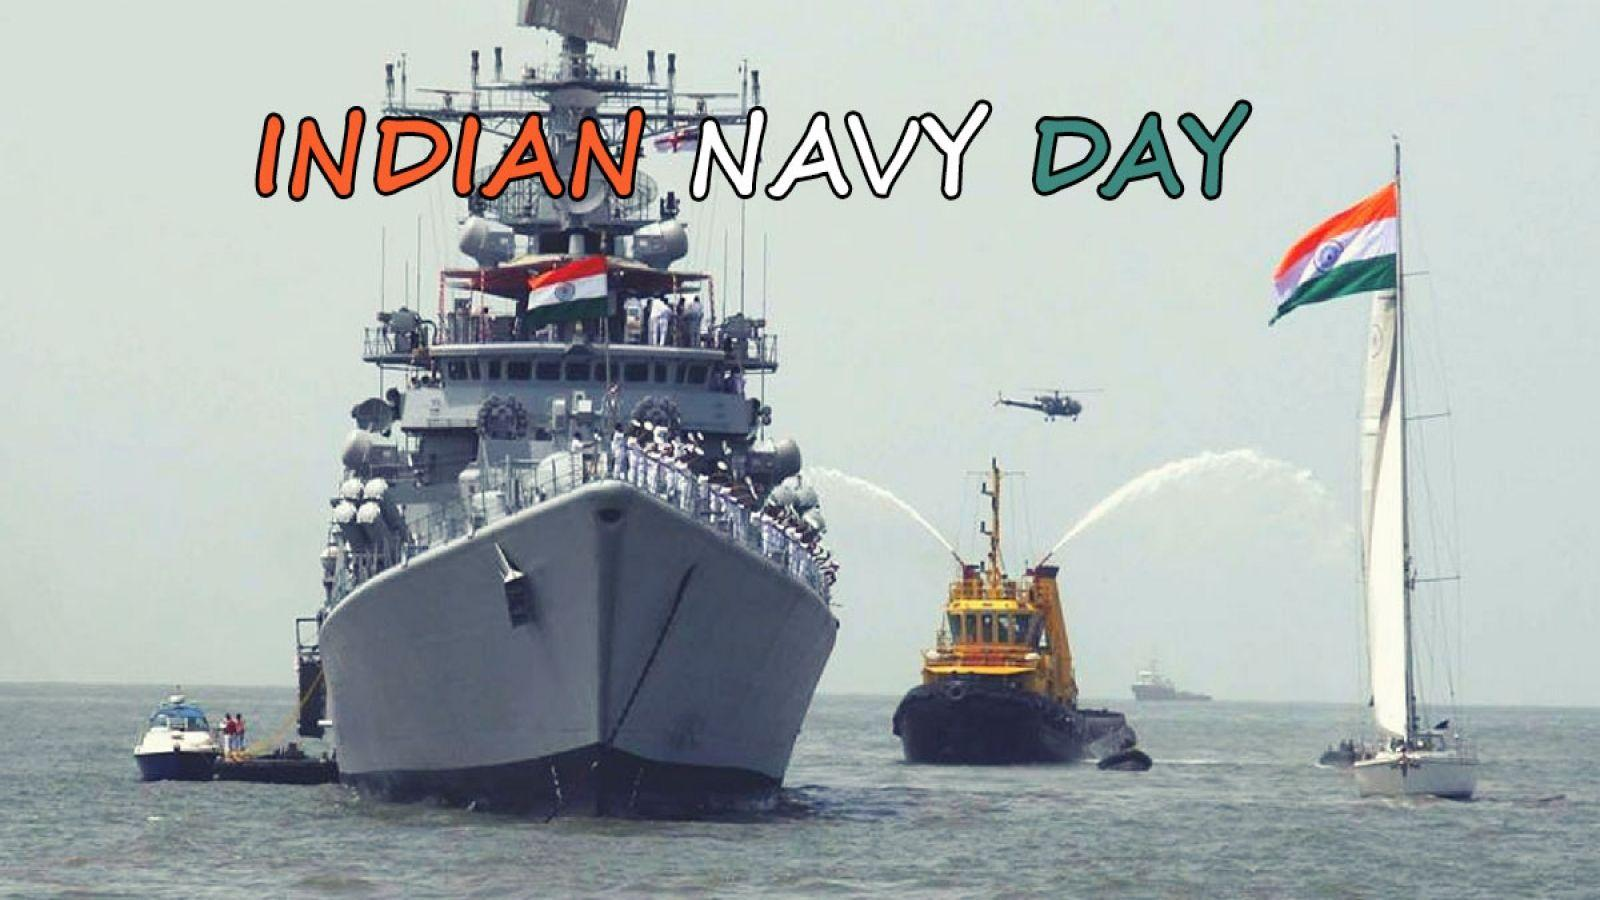 Happy Indian Navy Day Ships Wishes Greetings Hd Wallpapers